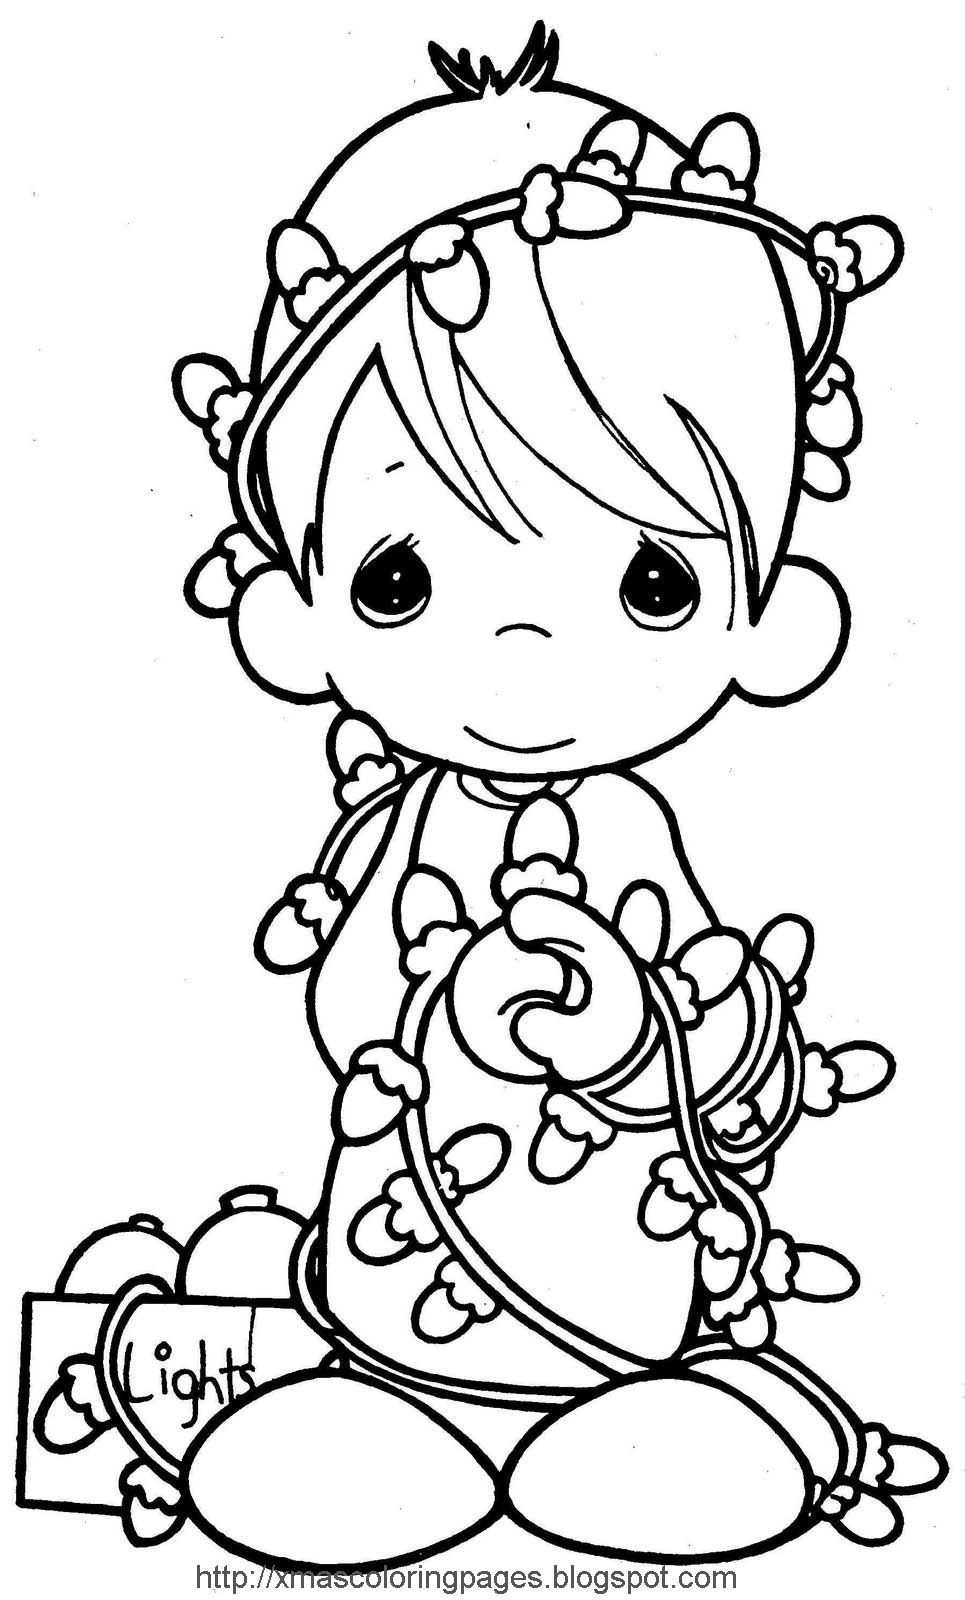 Santa Coloring Pages With XMAS COLORING PAGES ANGEL PAGE Color Sheets Pinterest